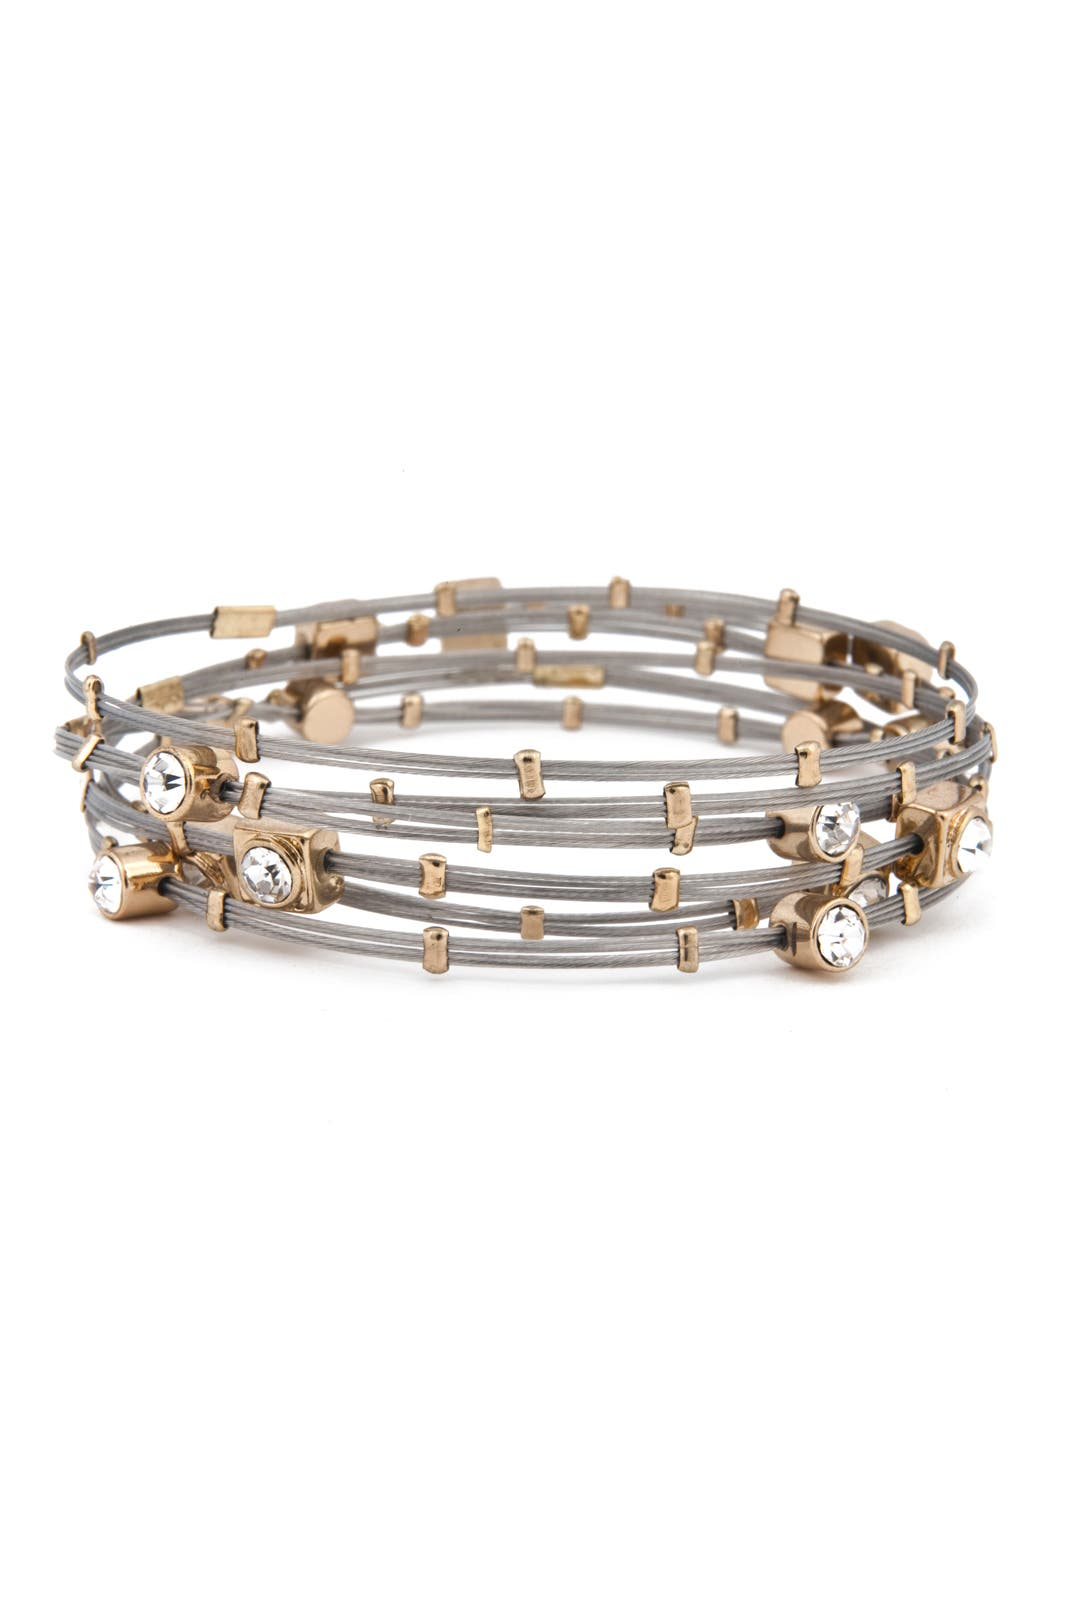 Dainty Elegant Crystal Bracelet Set by Cara Accessories